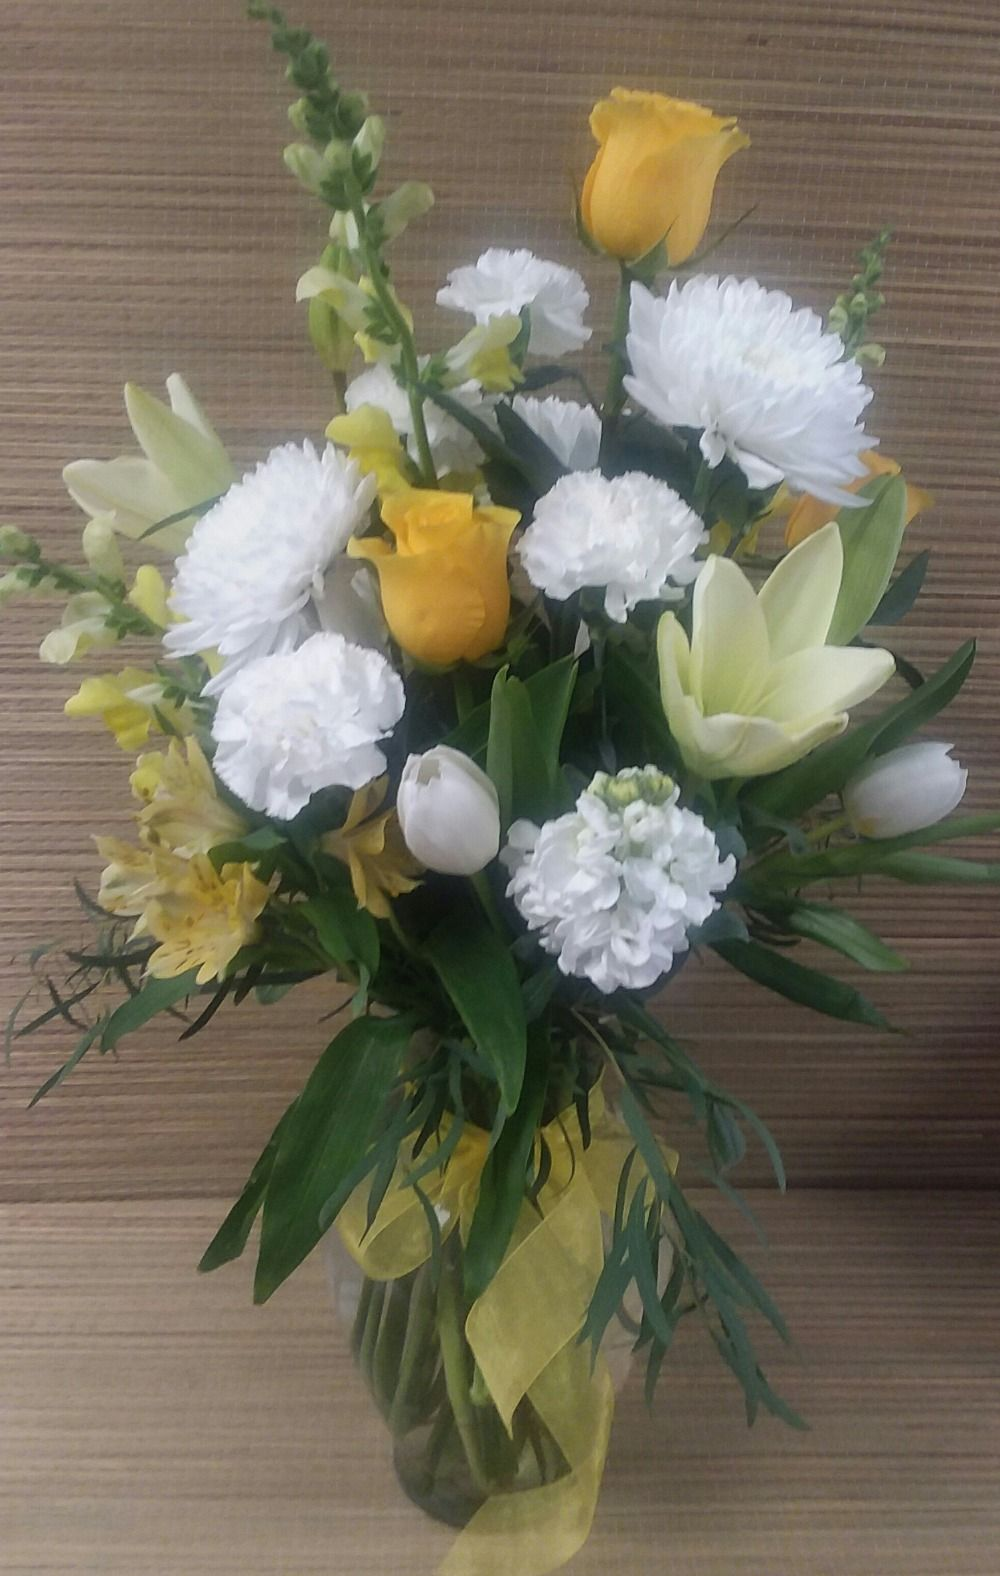 225 & Vase with yellow and white flowers Naturally Yours Designs-Fairview ...